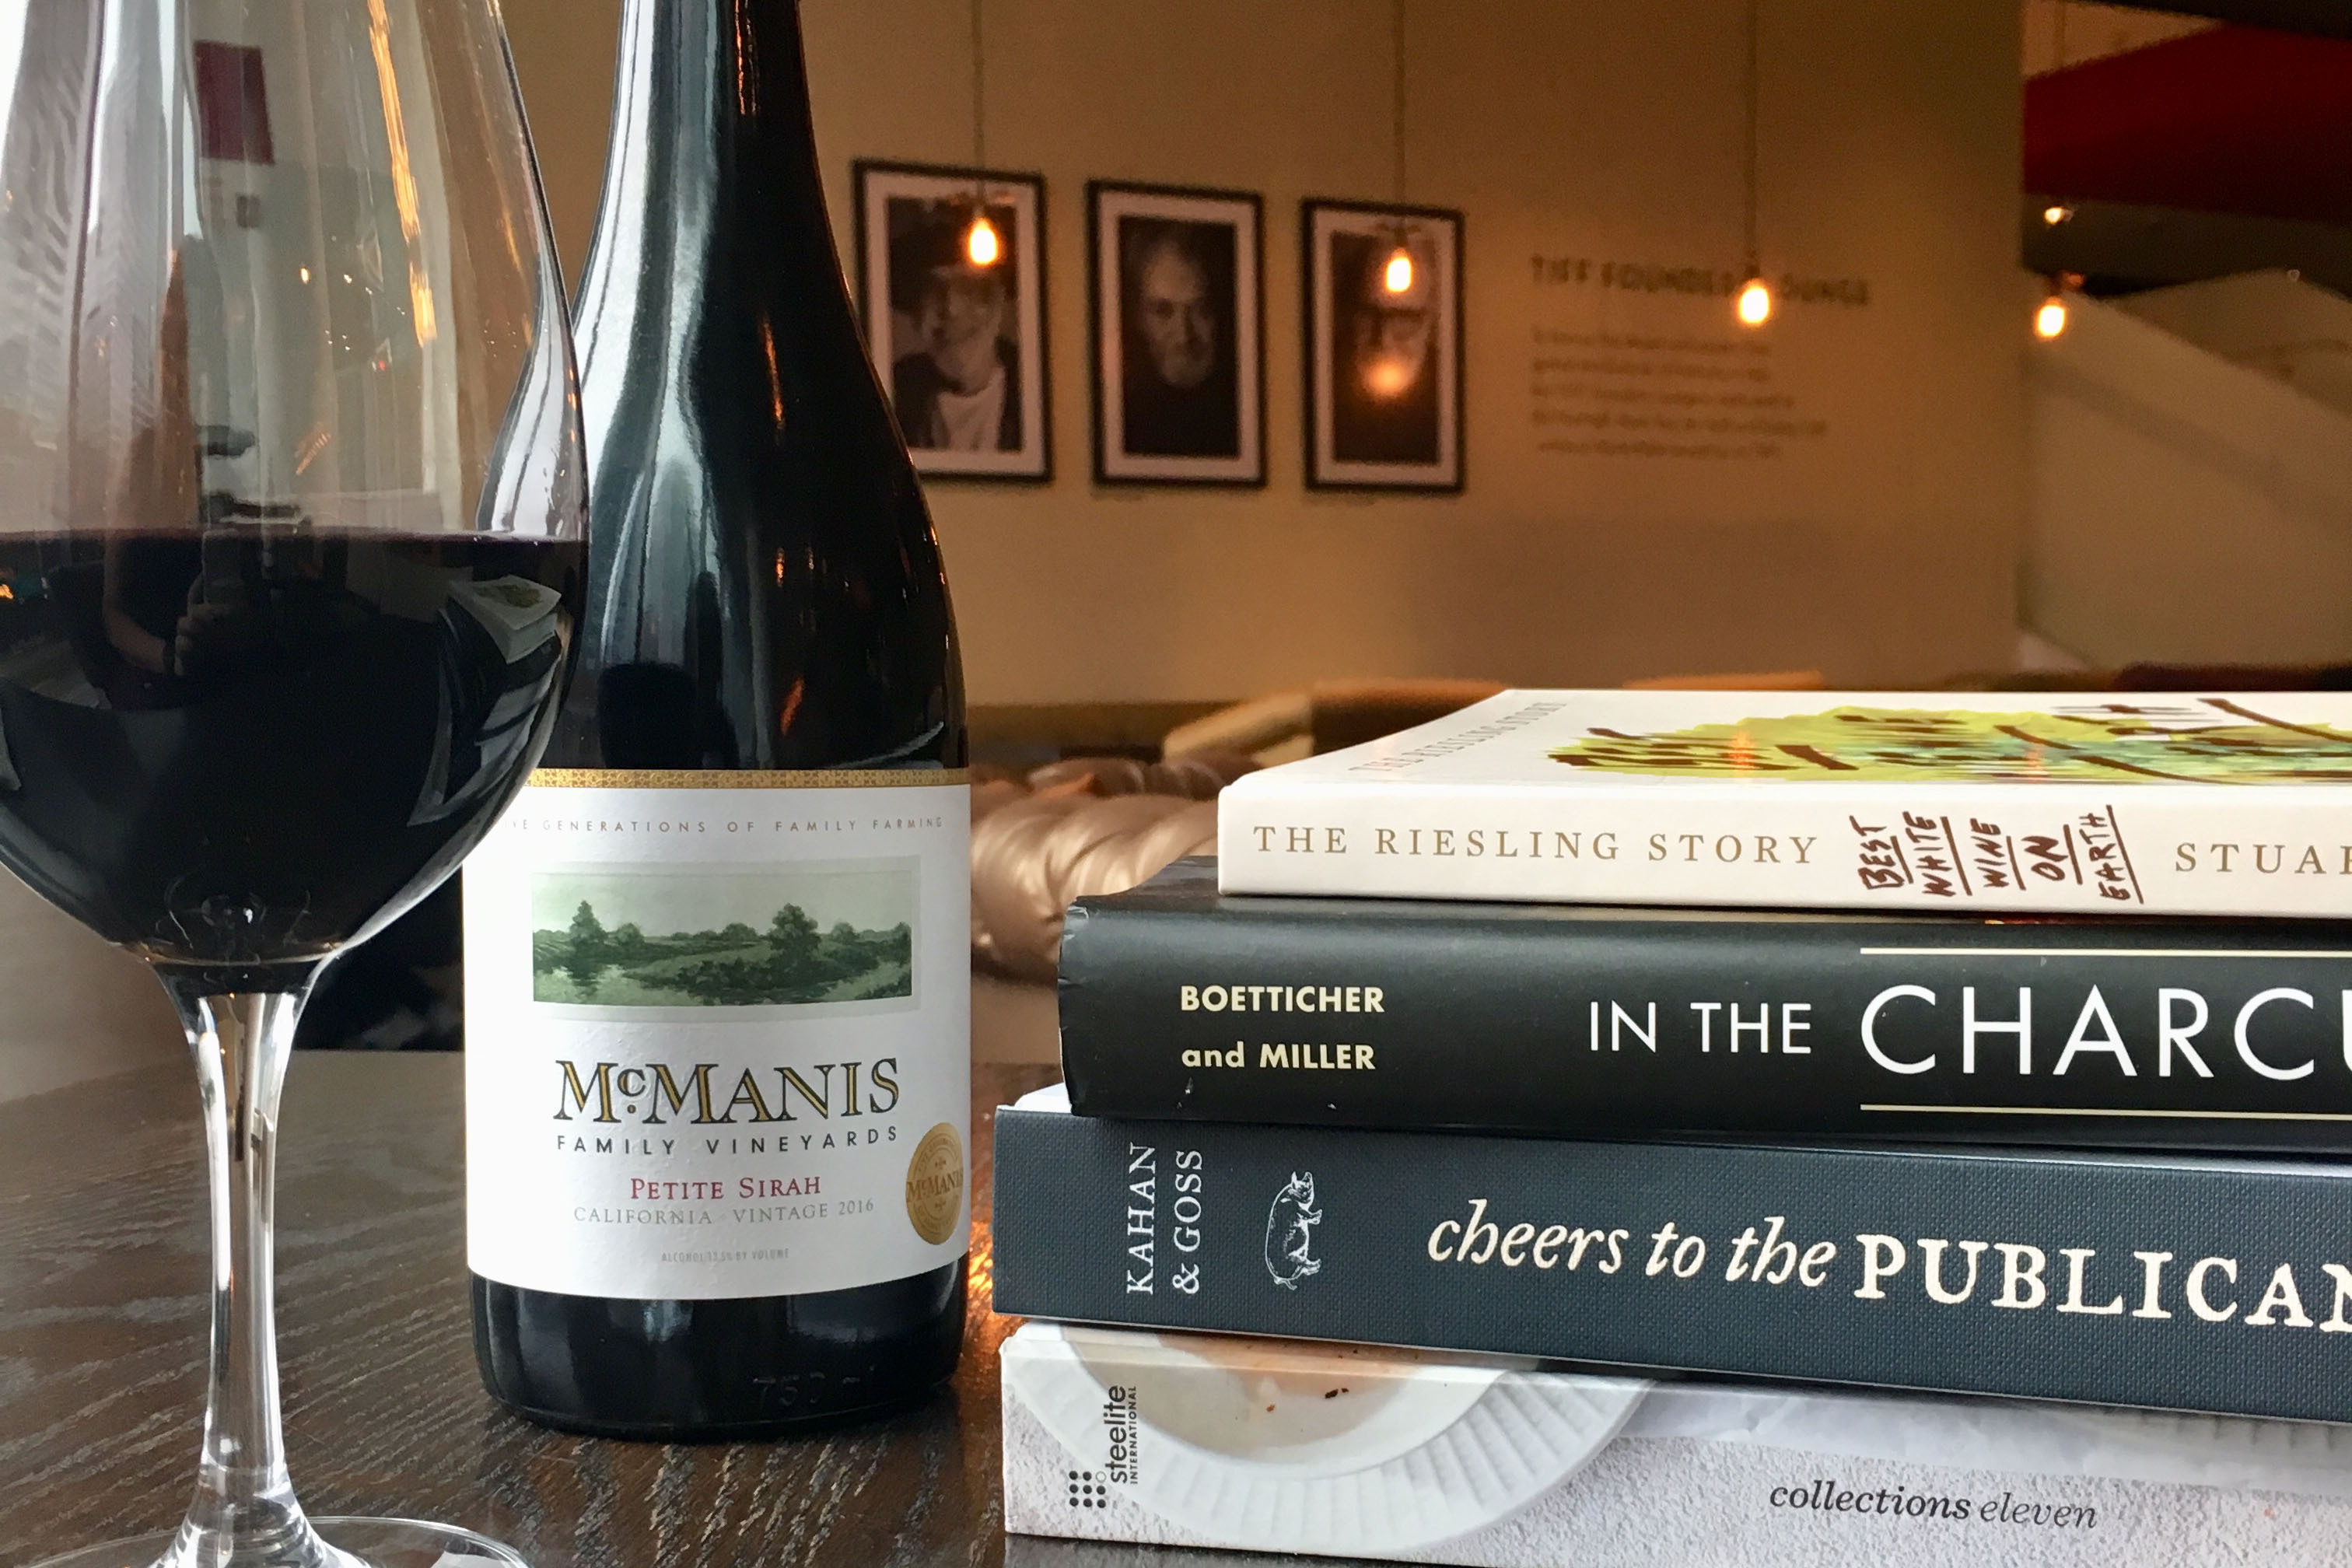 Wine Glass and Bottle Beside Books on Wood Table